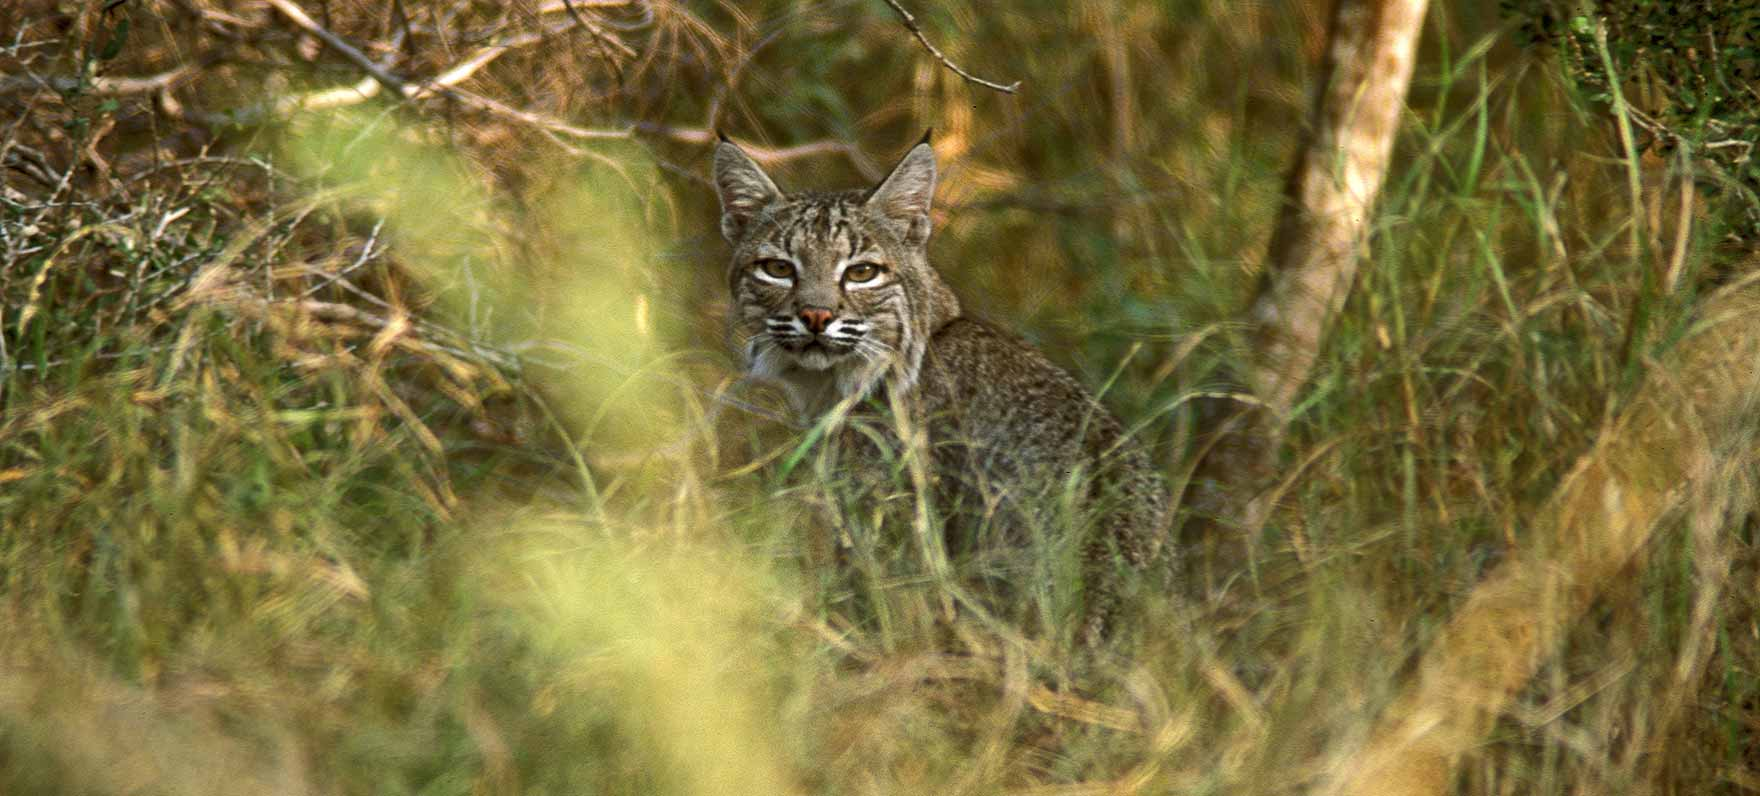 Bobcats serve an ecosystem function.